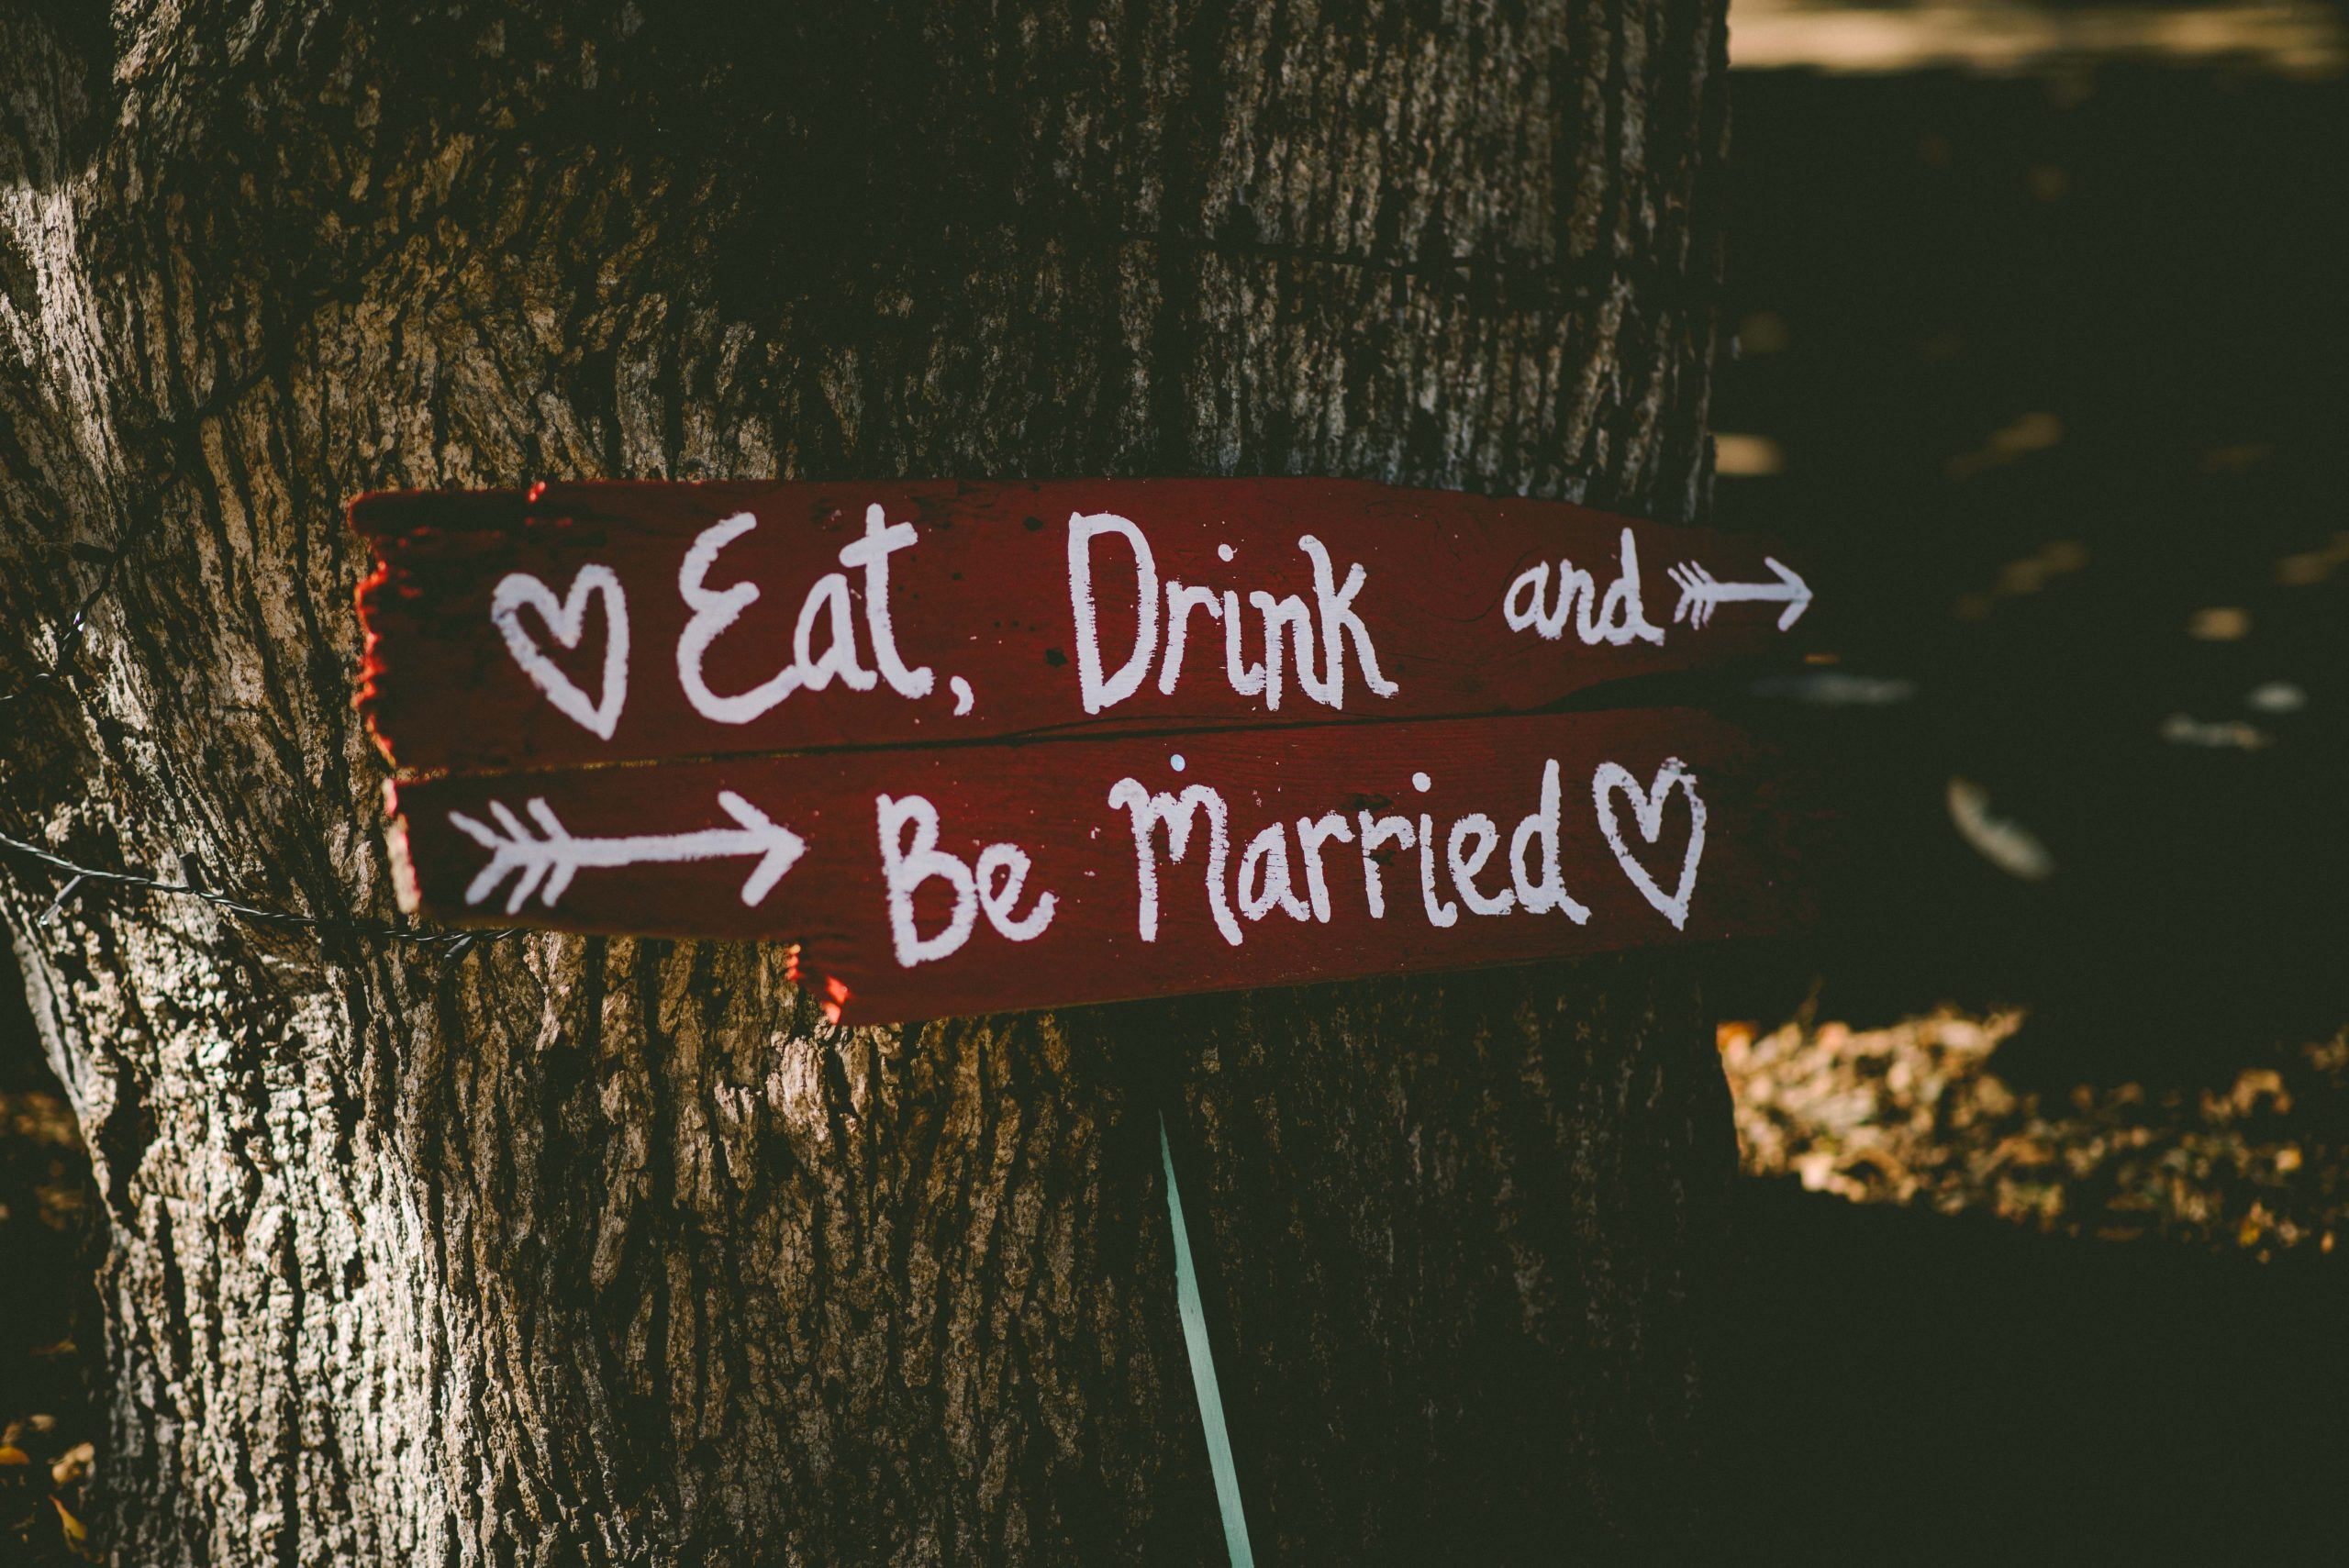 red sign in front of a set of tree trunks. the sign reads: Eat, drink, and be married, with hearts at the beginning and end of the sign, and arrows pointing to the right.